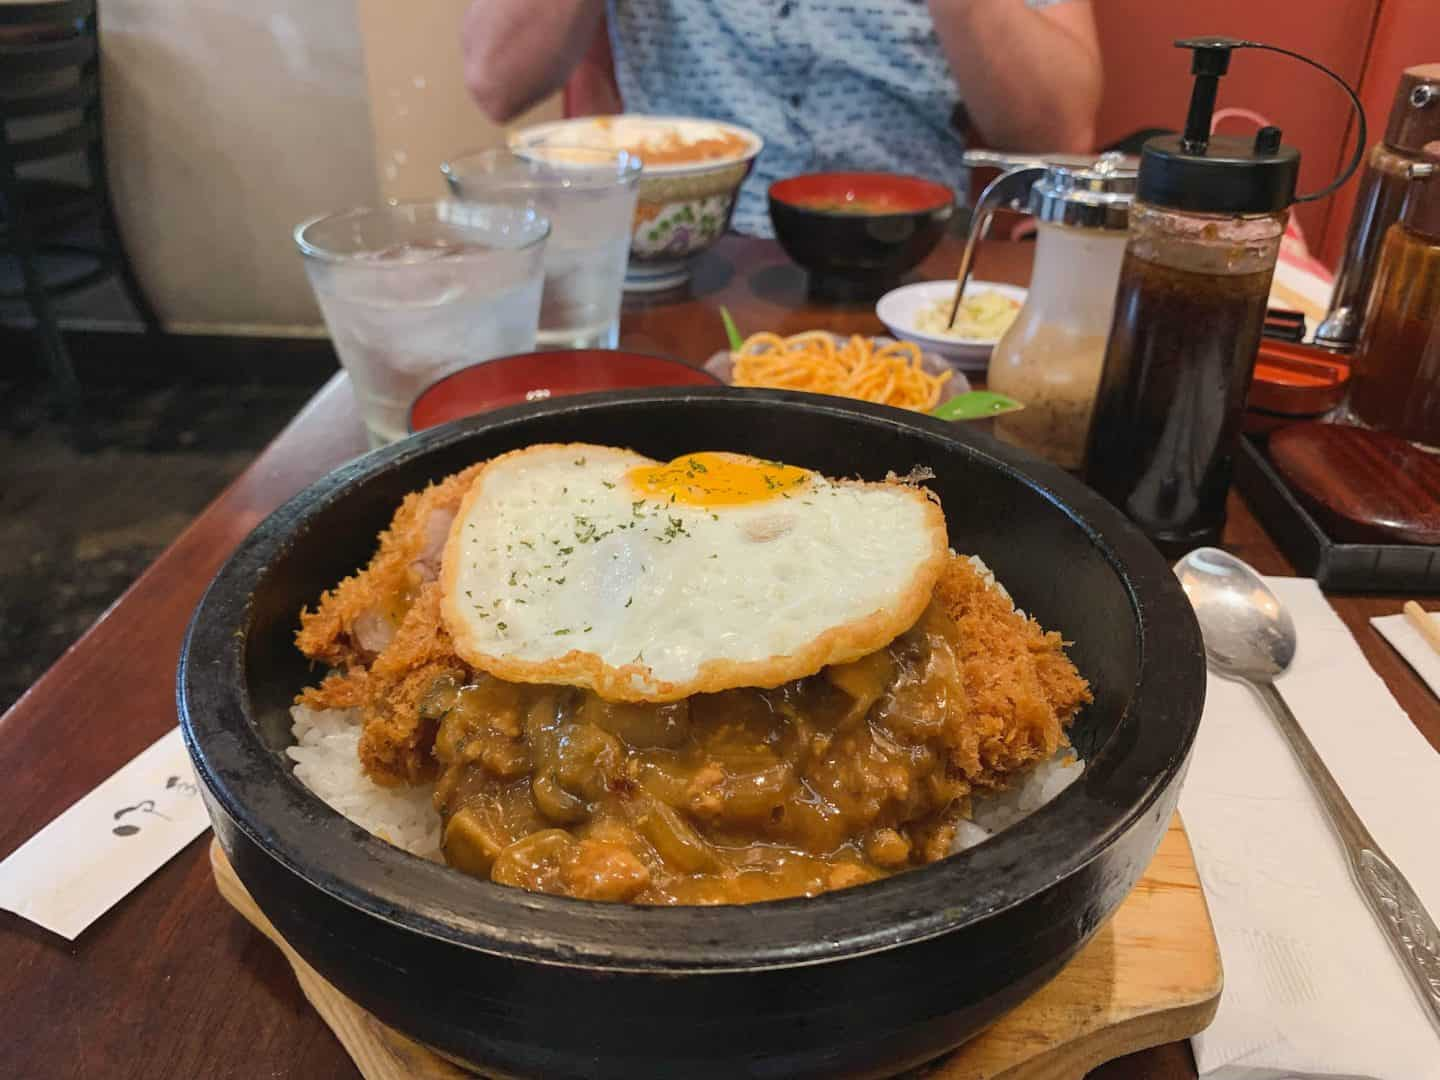 Tonkatsu Ginza Bairn is one of the best restaurants to add to your Oahu itinerary